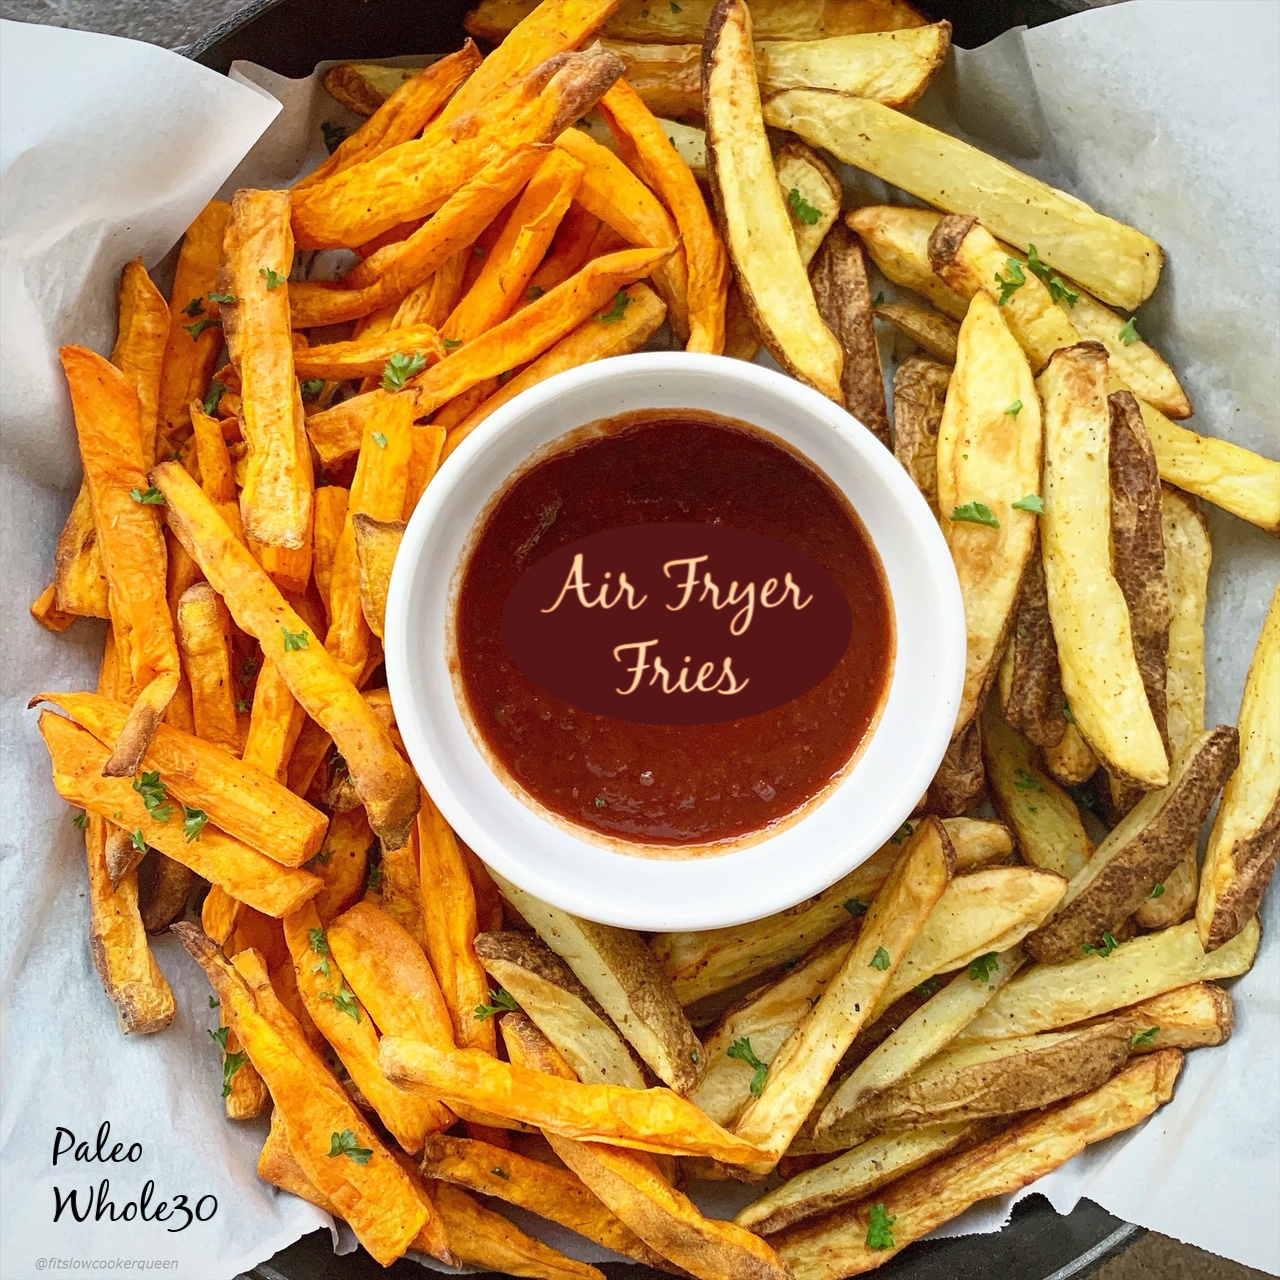 Homemade french fries using red potatoes